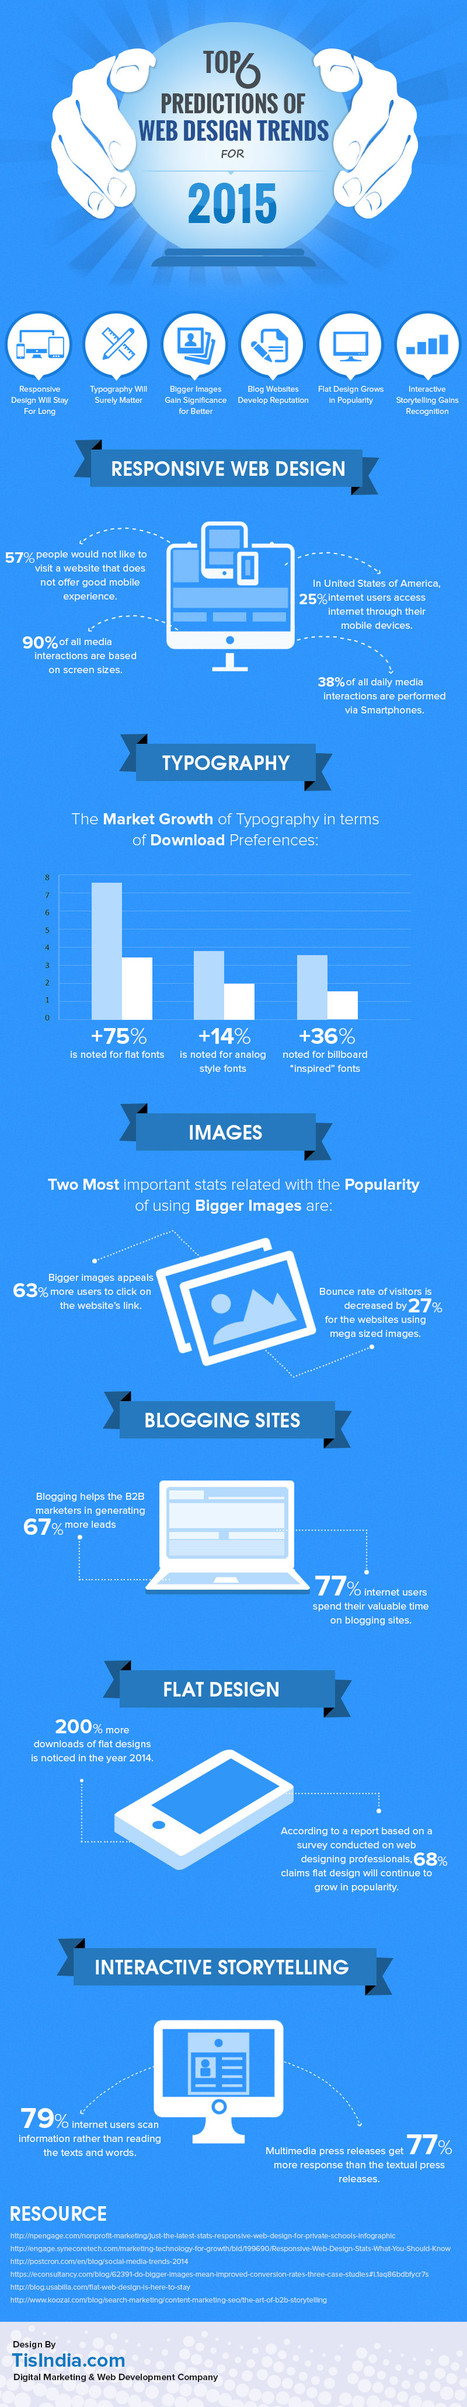 Web Design Trends 2015 [Infographic] | Design Revolution | Scoop.it